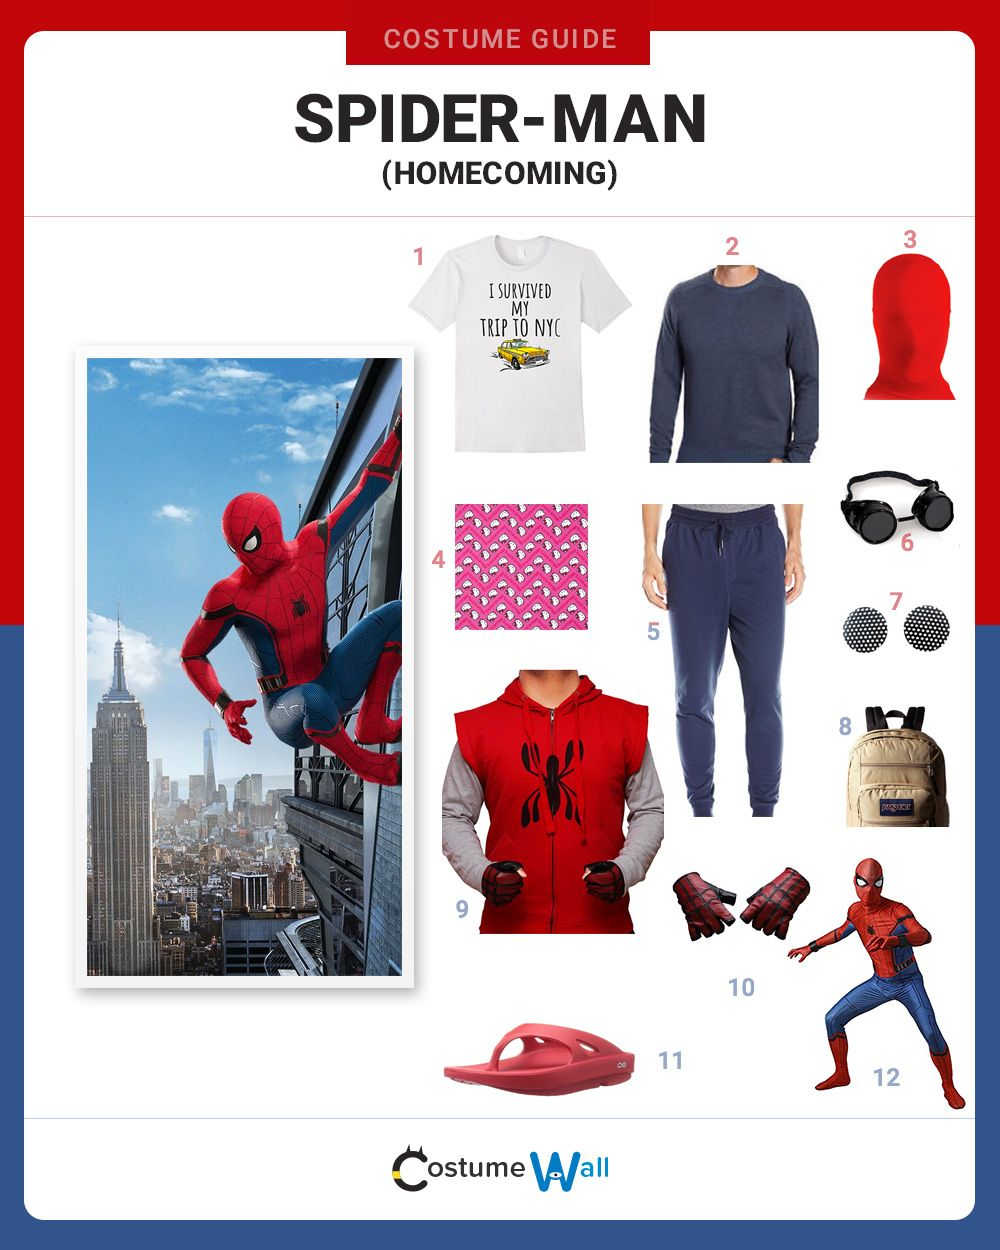 Dress Like Spider-Man (Homecoming)   Homemade costumes, Tom holland on homemade ghost shirts, homemade ironman shirts, homemade crayola shirts, homemade halloween shirts, homemade soccer shirts, homemade pacman shirts, homemade jurassic park shirts, homemade peter pan shirts, homemade wwe shirts, homemade cat shirts, homemade birthday shirts, homemade hannah montana shirts, homemade sports shirts, homemade football shirts, homemade pi shirts, homemade thomas shirts, homemade tinkerbell shirts, homemade superhero shirts, homemade dinosaur shirts, homemade superman costume for a girl,